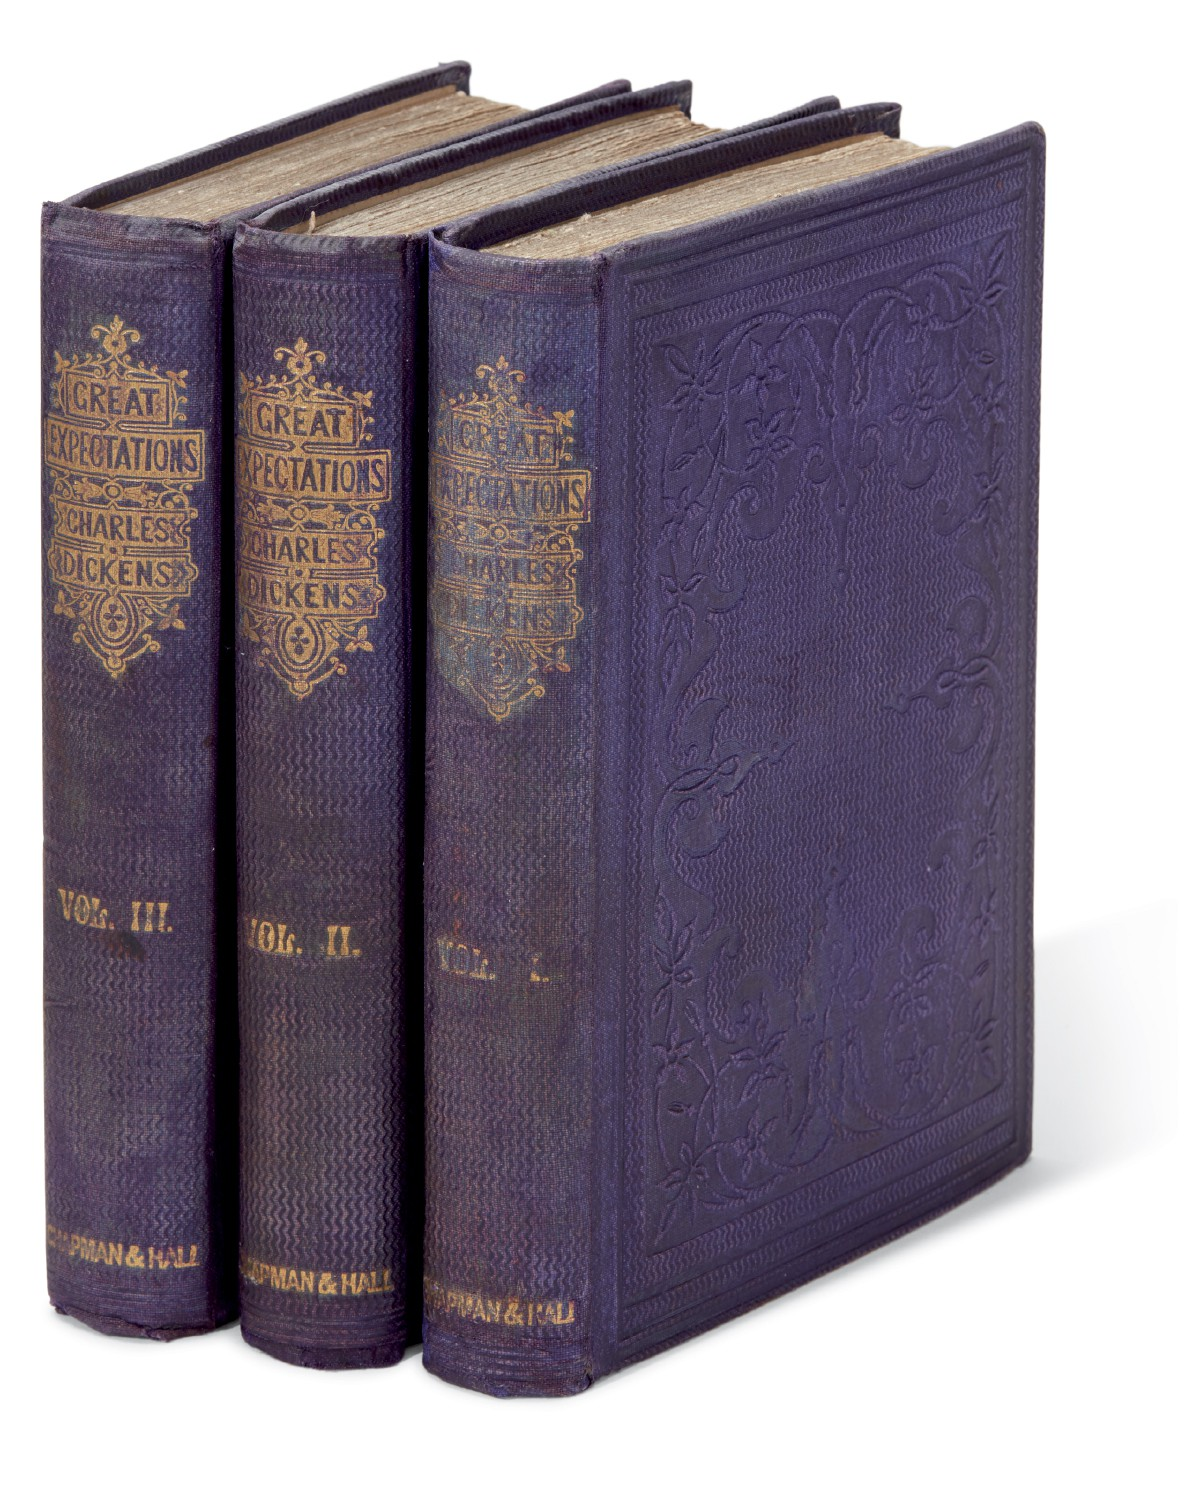 Dickens, Great Expectations, 1861, first edition, third impression